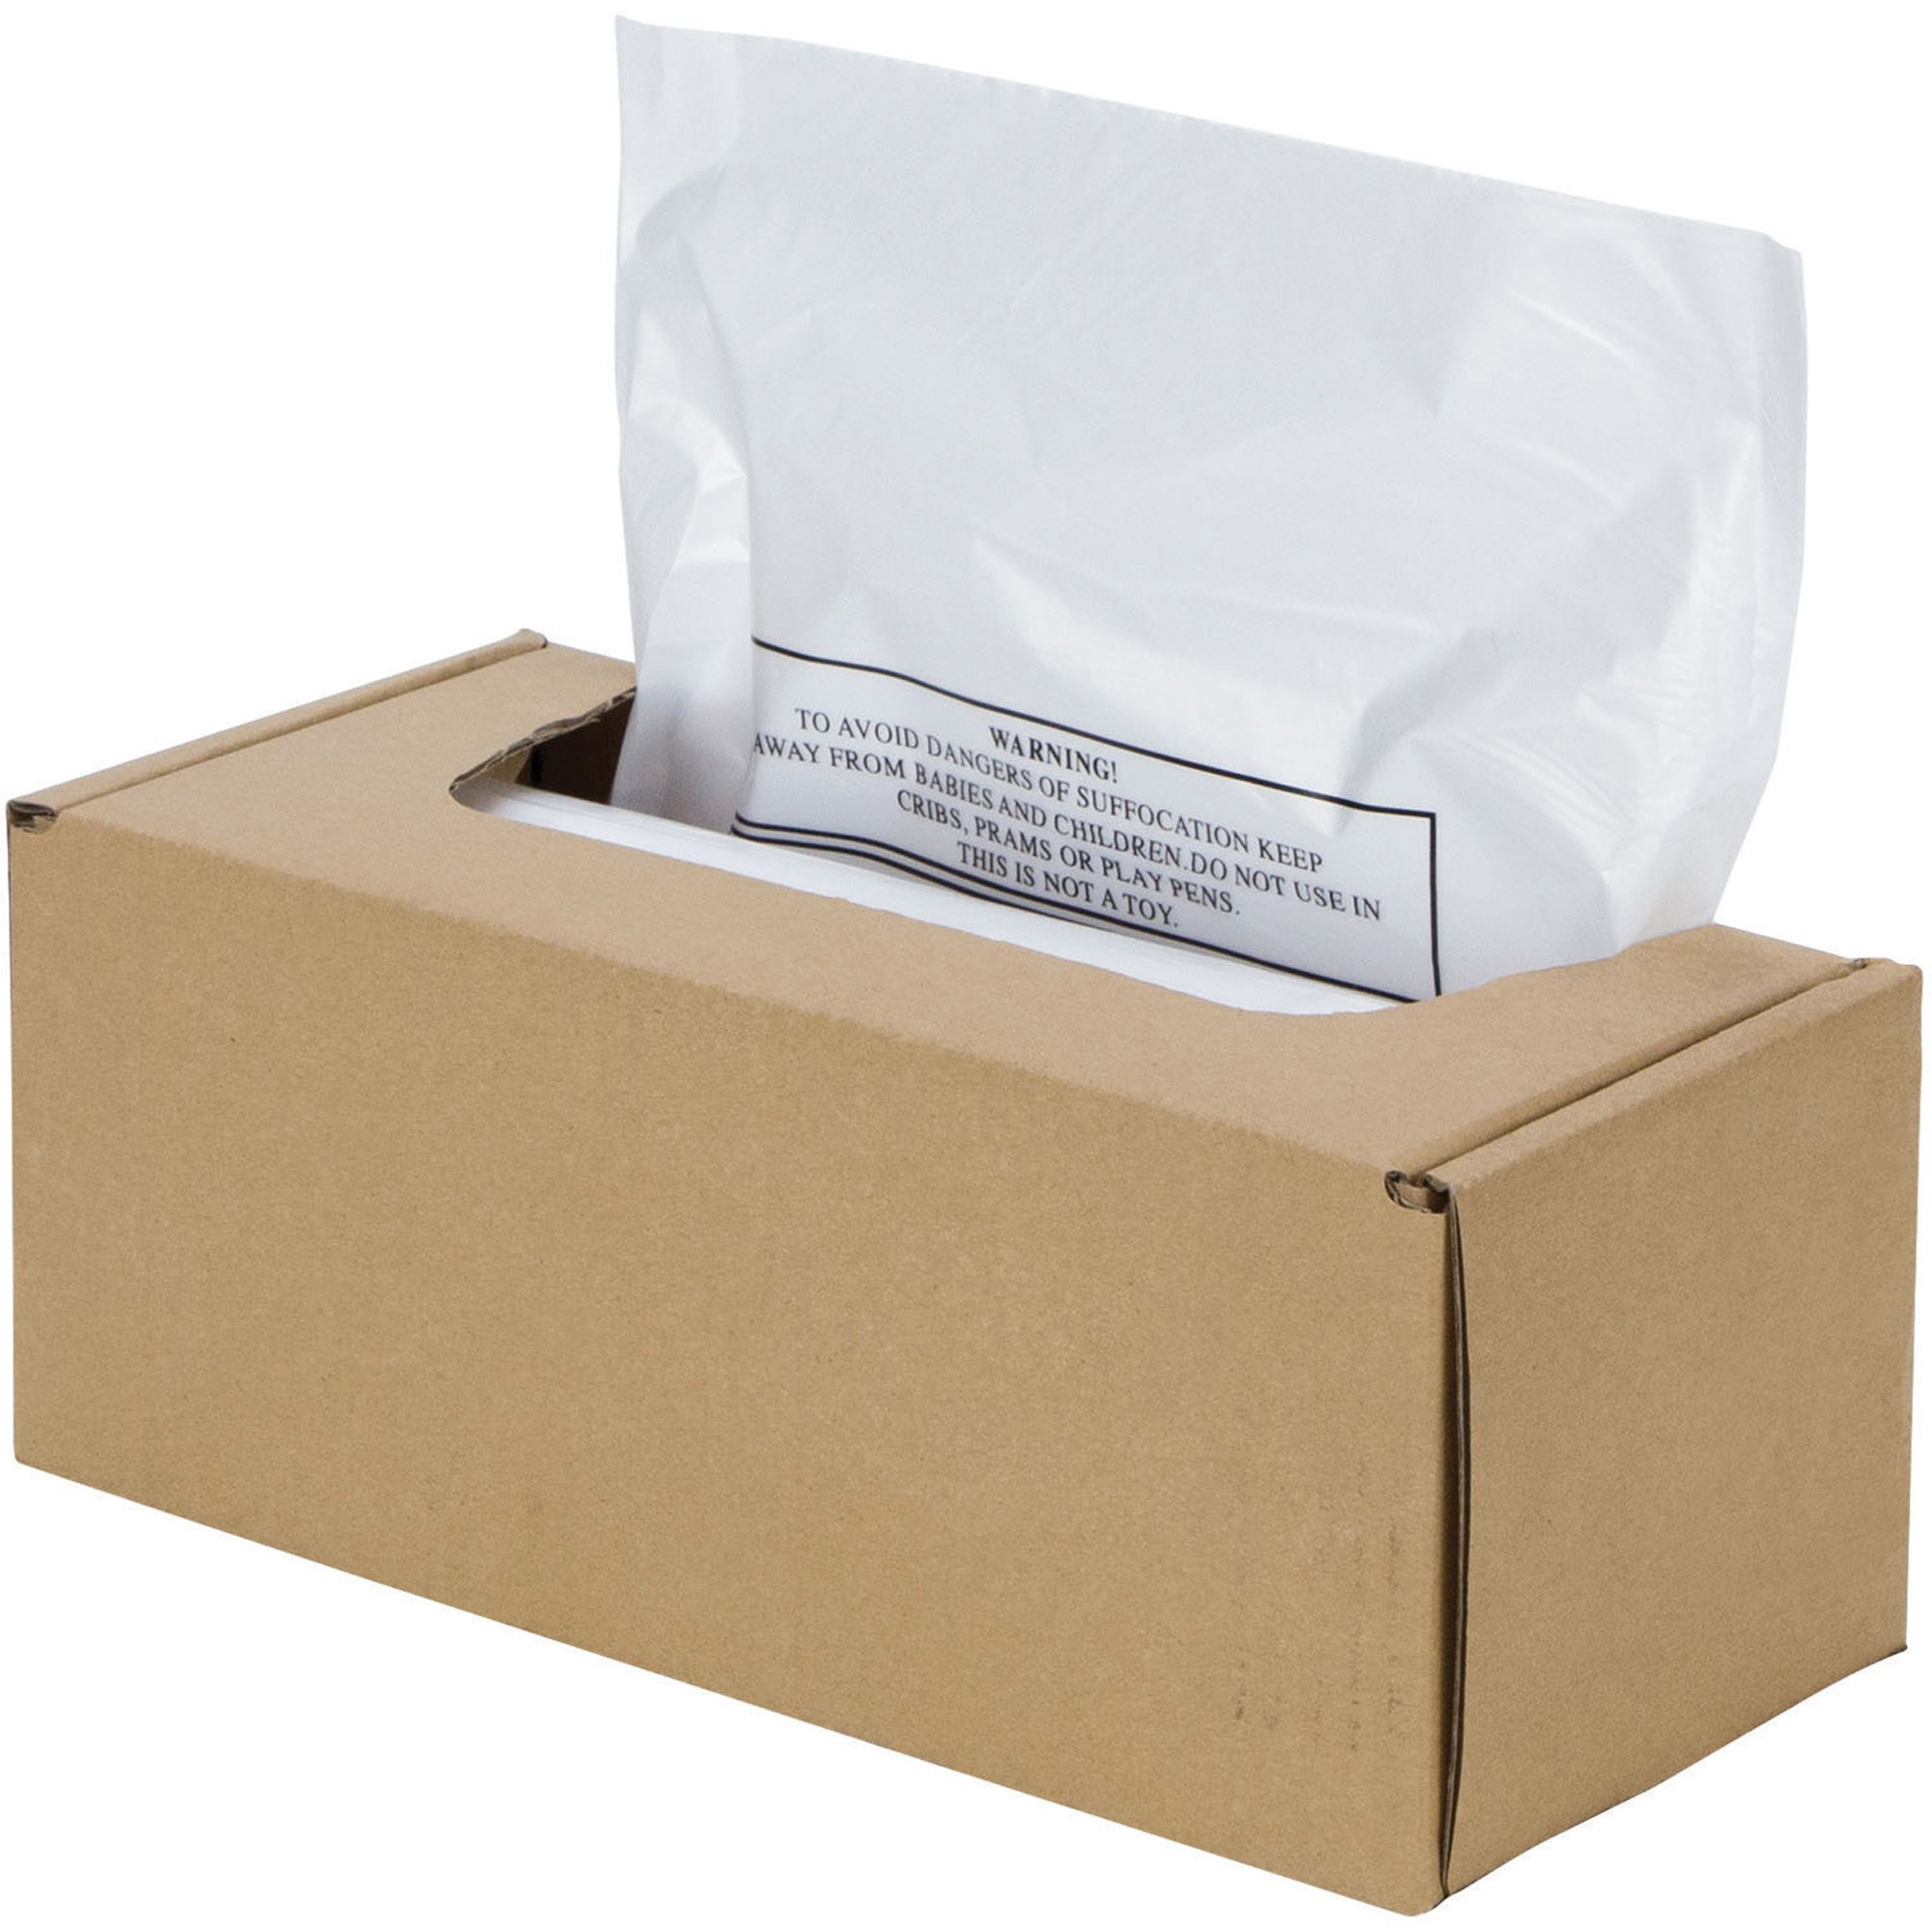 Waste Bags for AutoMax 500CL, 500C, 300CL and 300C Shredders